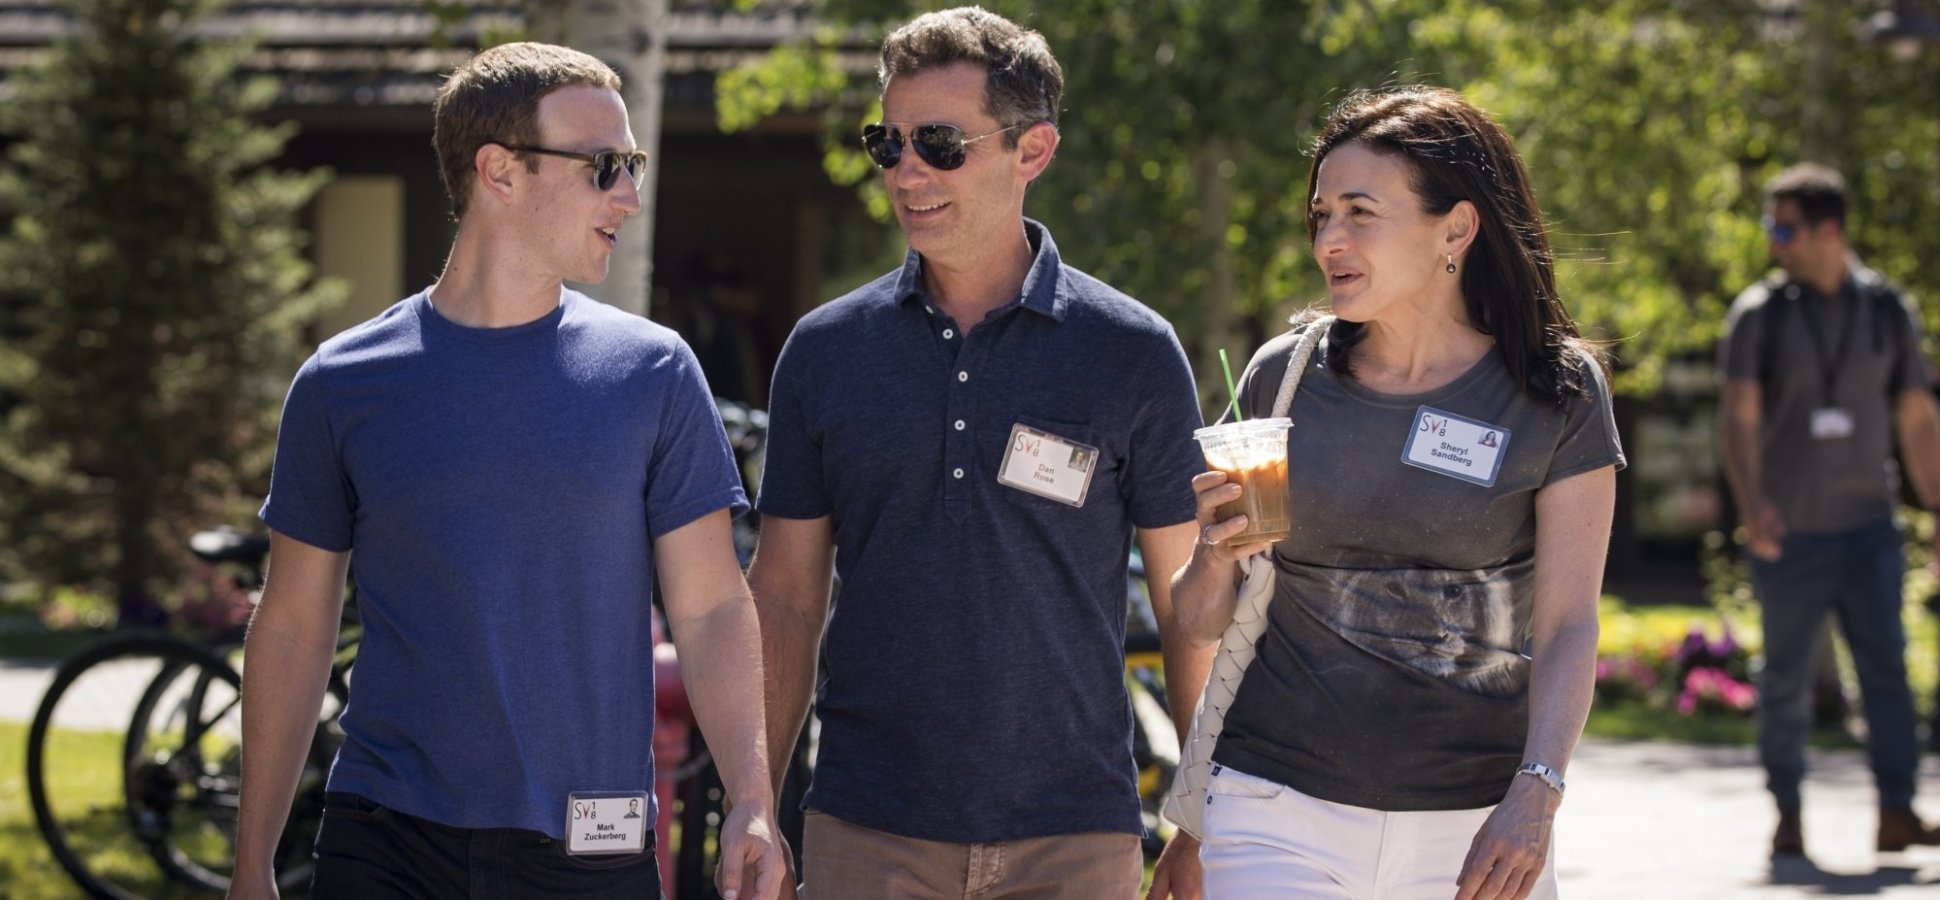 Tim Cook, Mark Zuckerberg, Sheryl Sandberg, and Other Tech Leaders Share Their Favorite Summer Reads